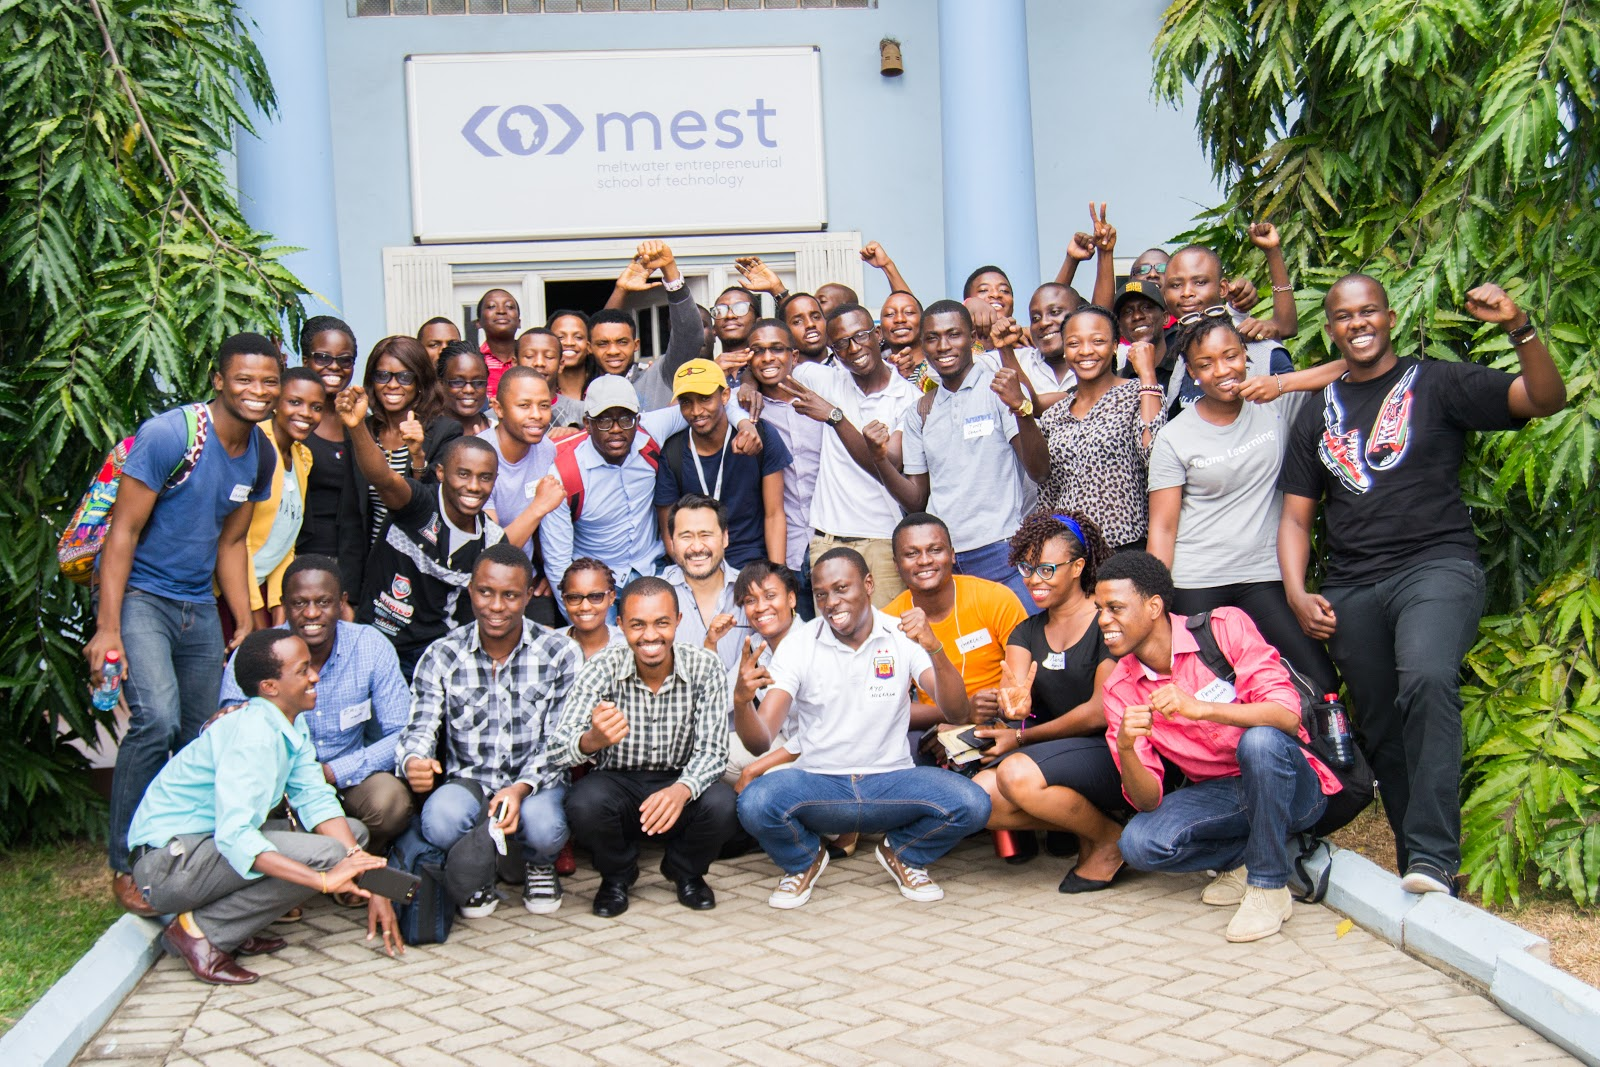 Entrepreneurs in Côte d'Ivoire can now apply to be part of MEST's training program